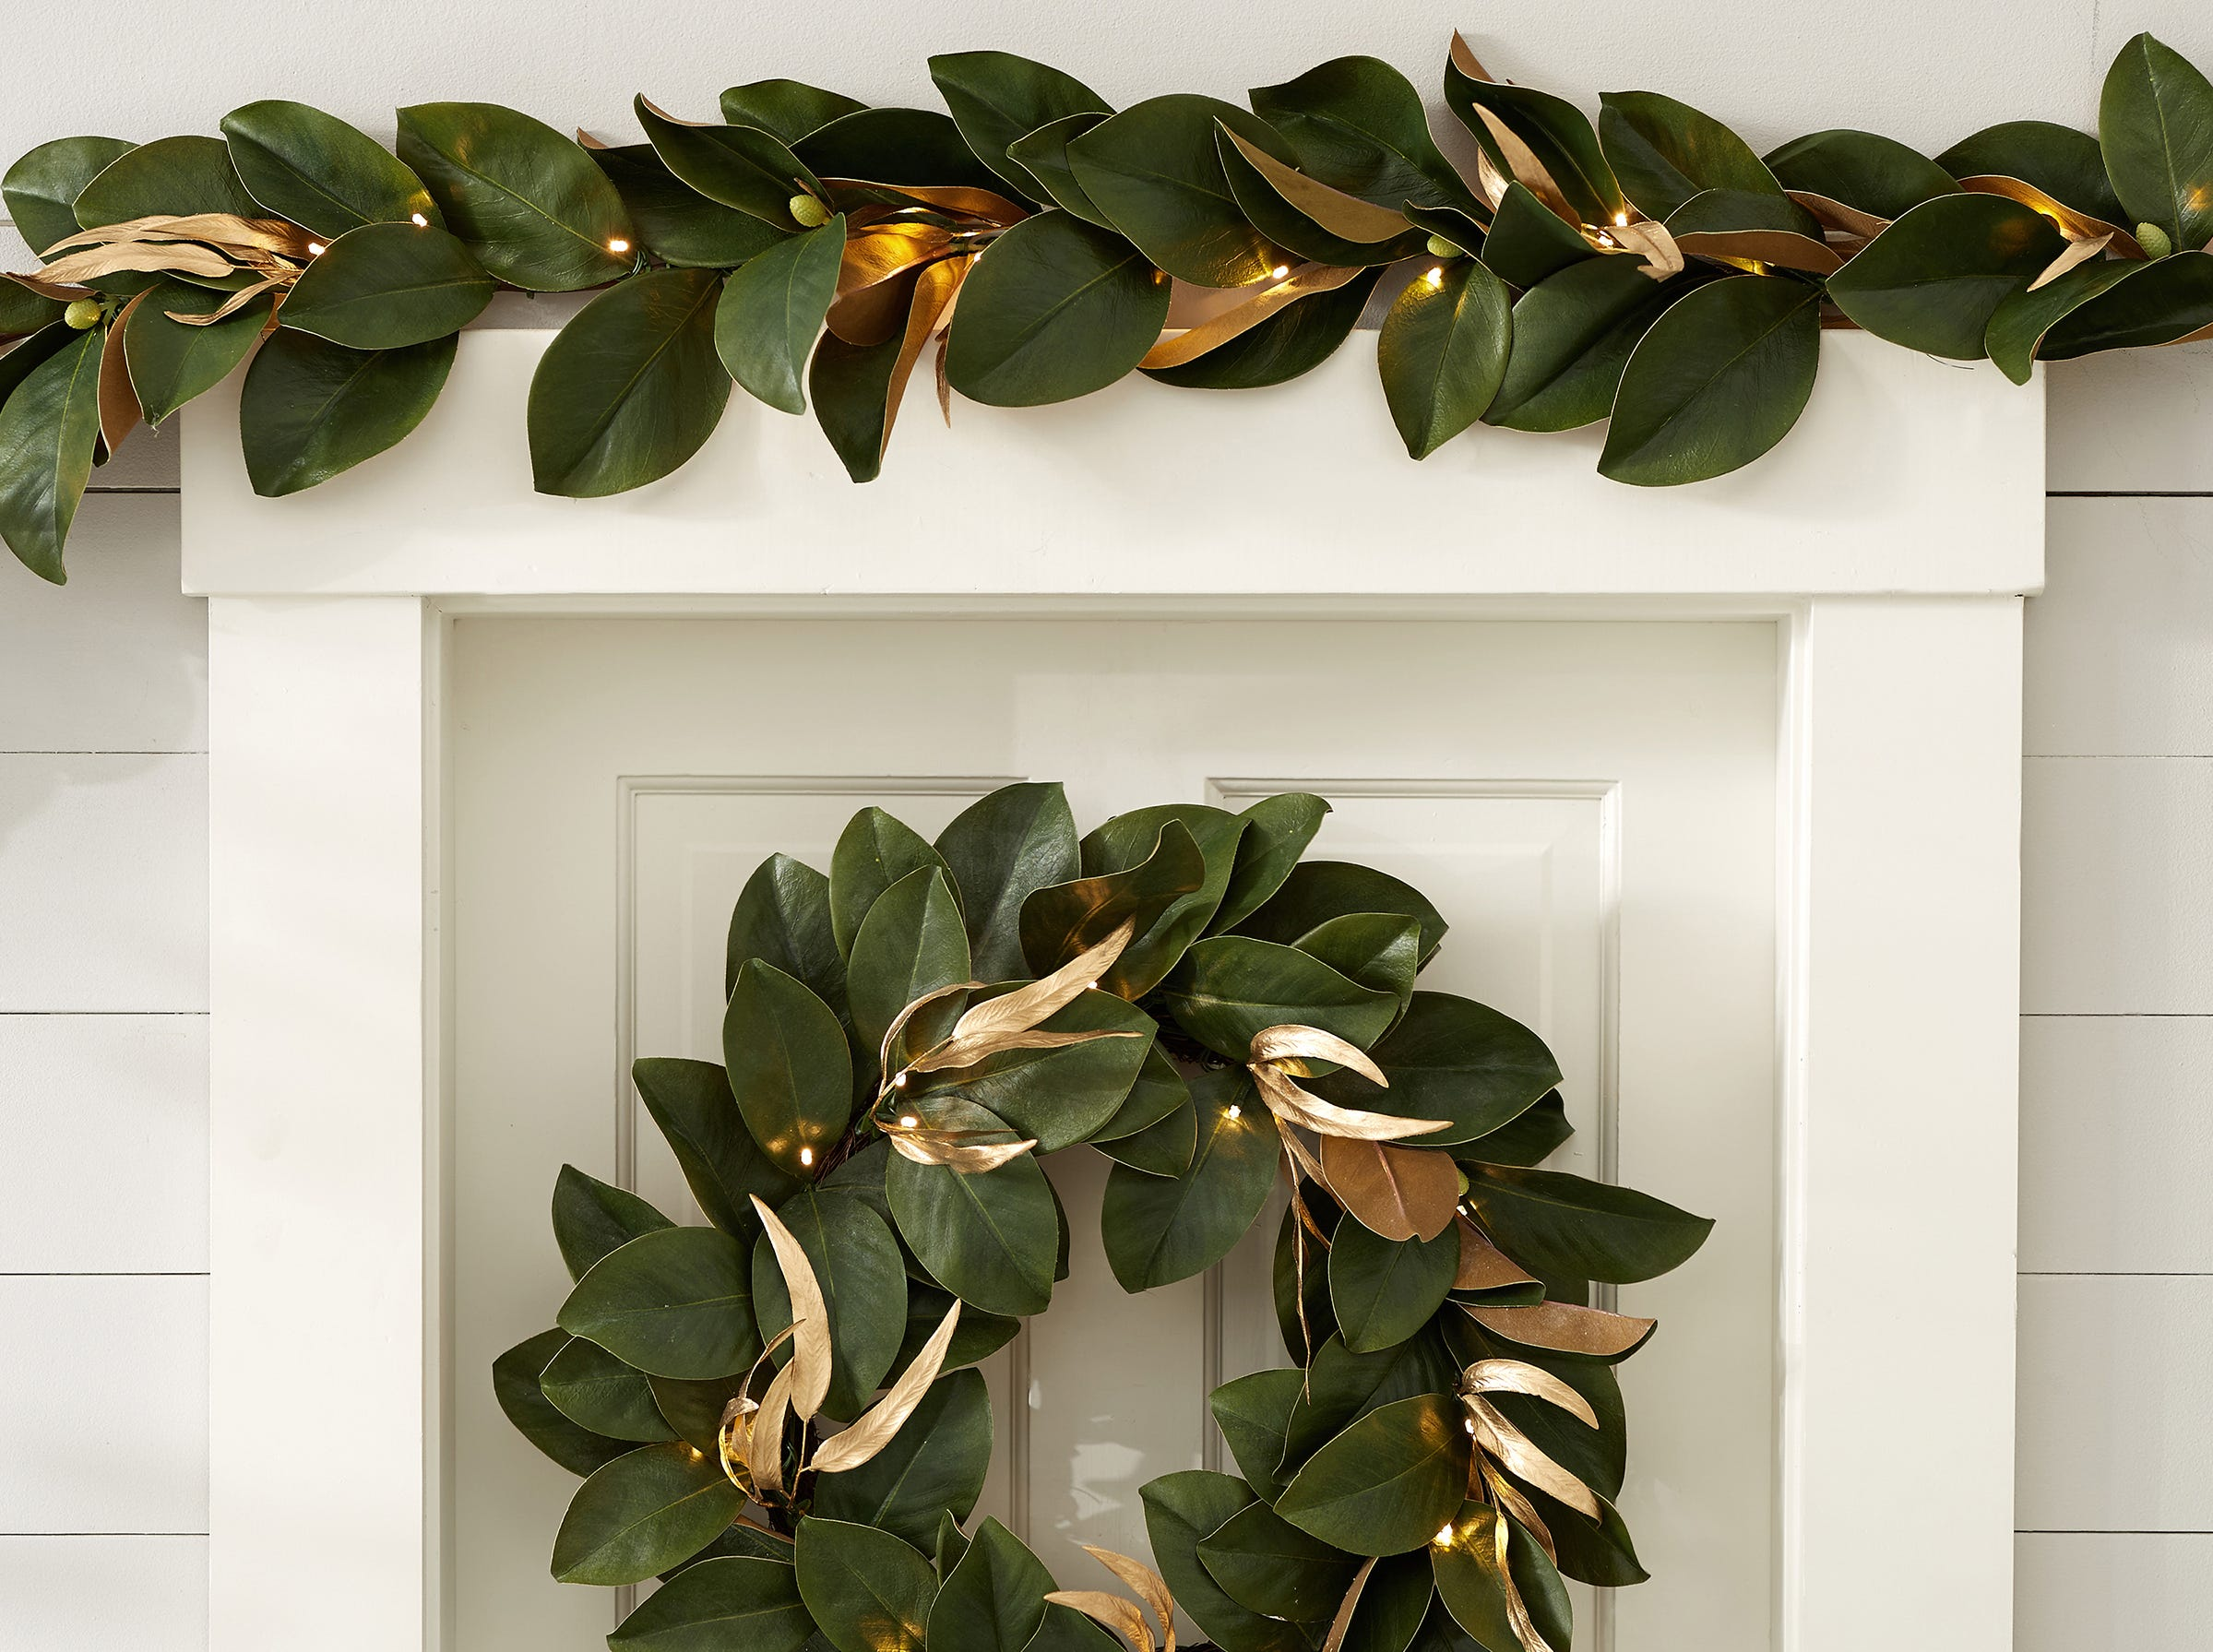 Classic shiny magnolia leaves, with their familiar rich dark green and copper leaves are lit with 25 LED lights on a 5-foot garland (or 35 lights on the 8-foot option). The garland and matching wreath, which have on/off switches on a battery box, are from Pottery Barn. They are a handsome tandem crowning the door frame and on the door.